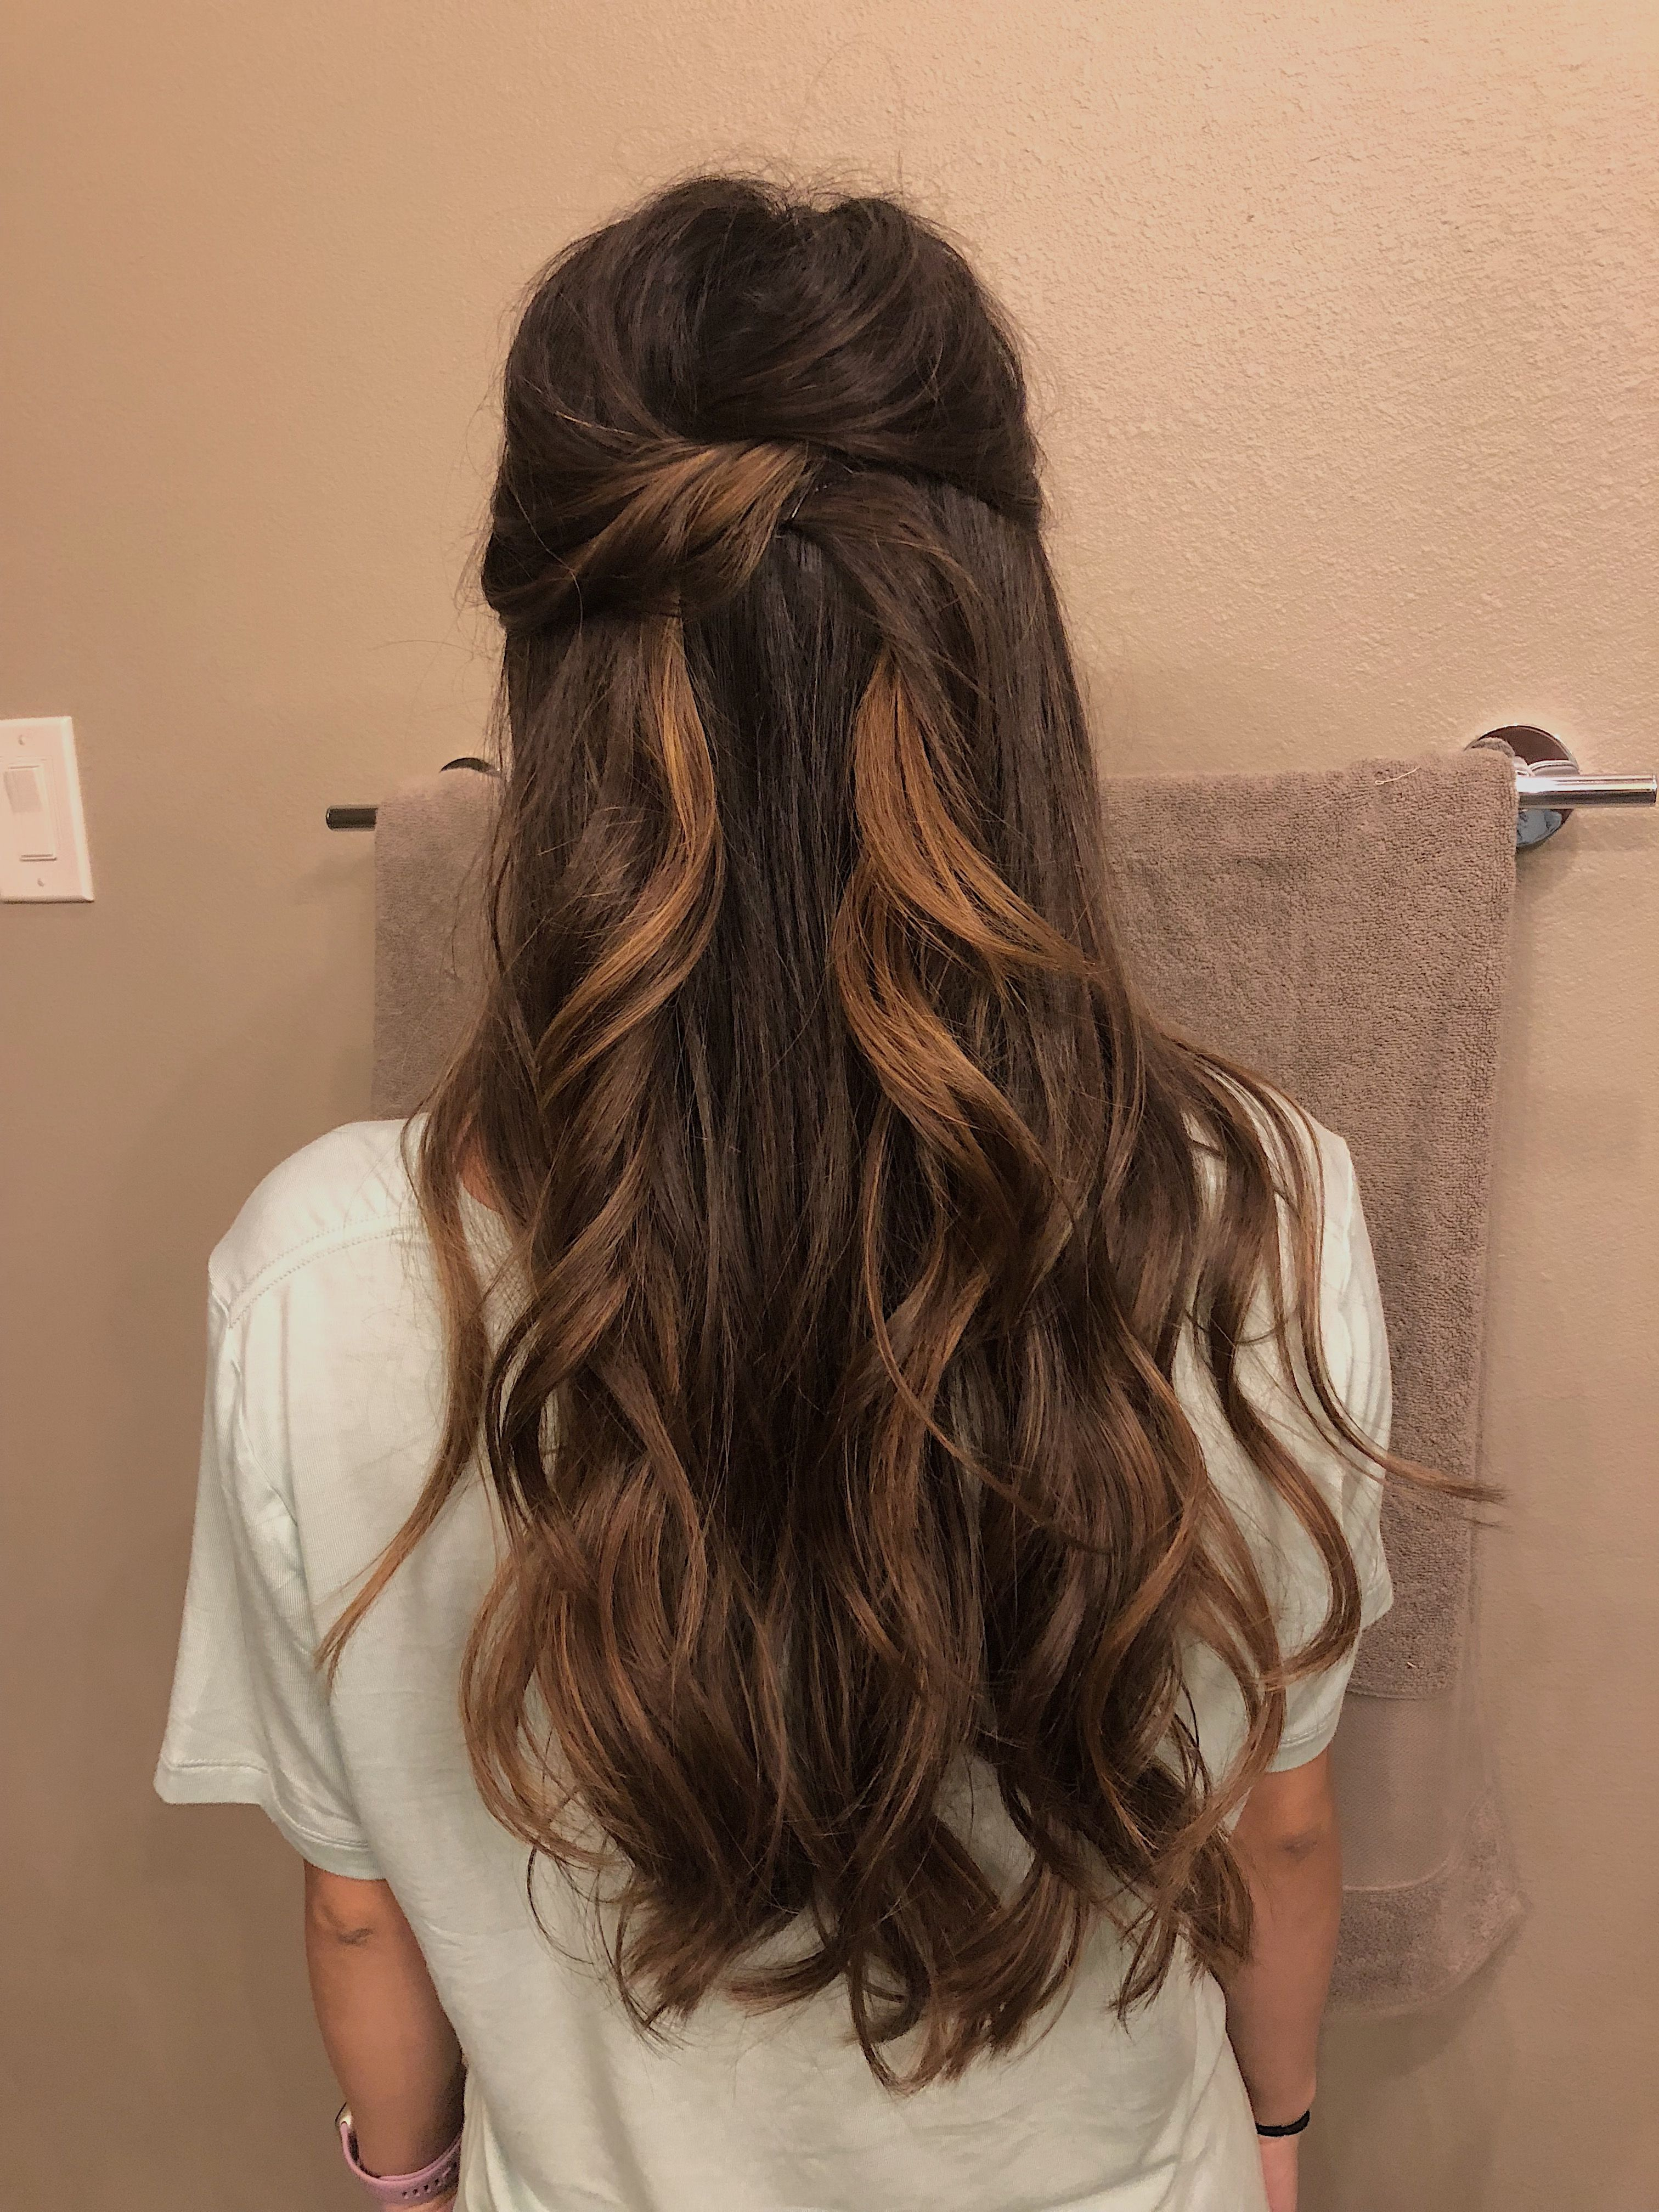 half up half down prom/wedding hair style